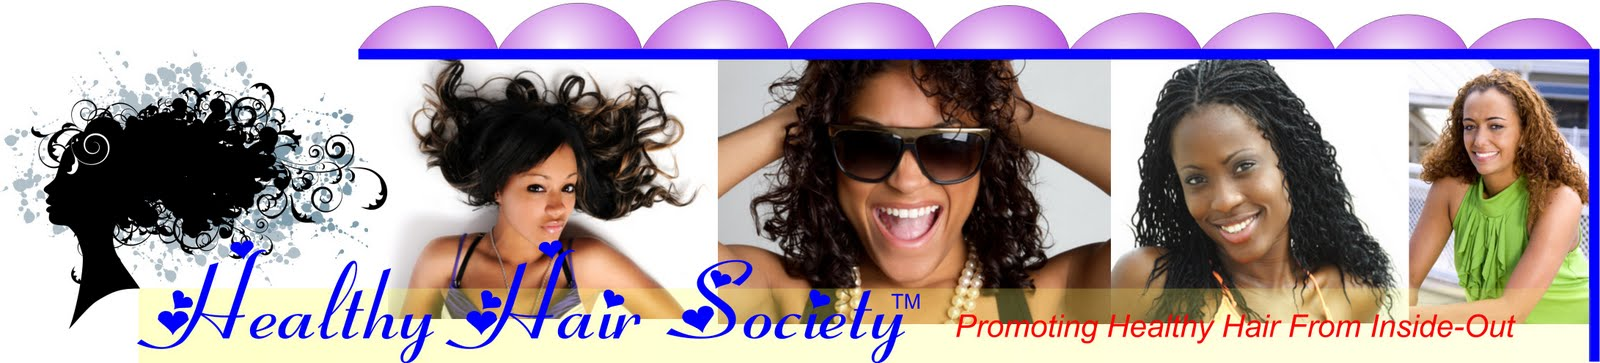 Healthy Hair Society